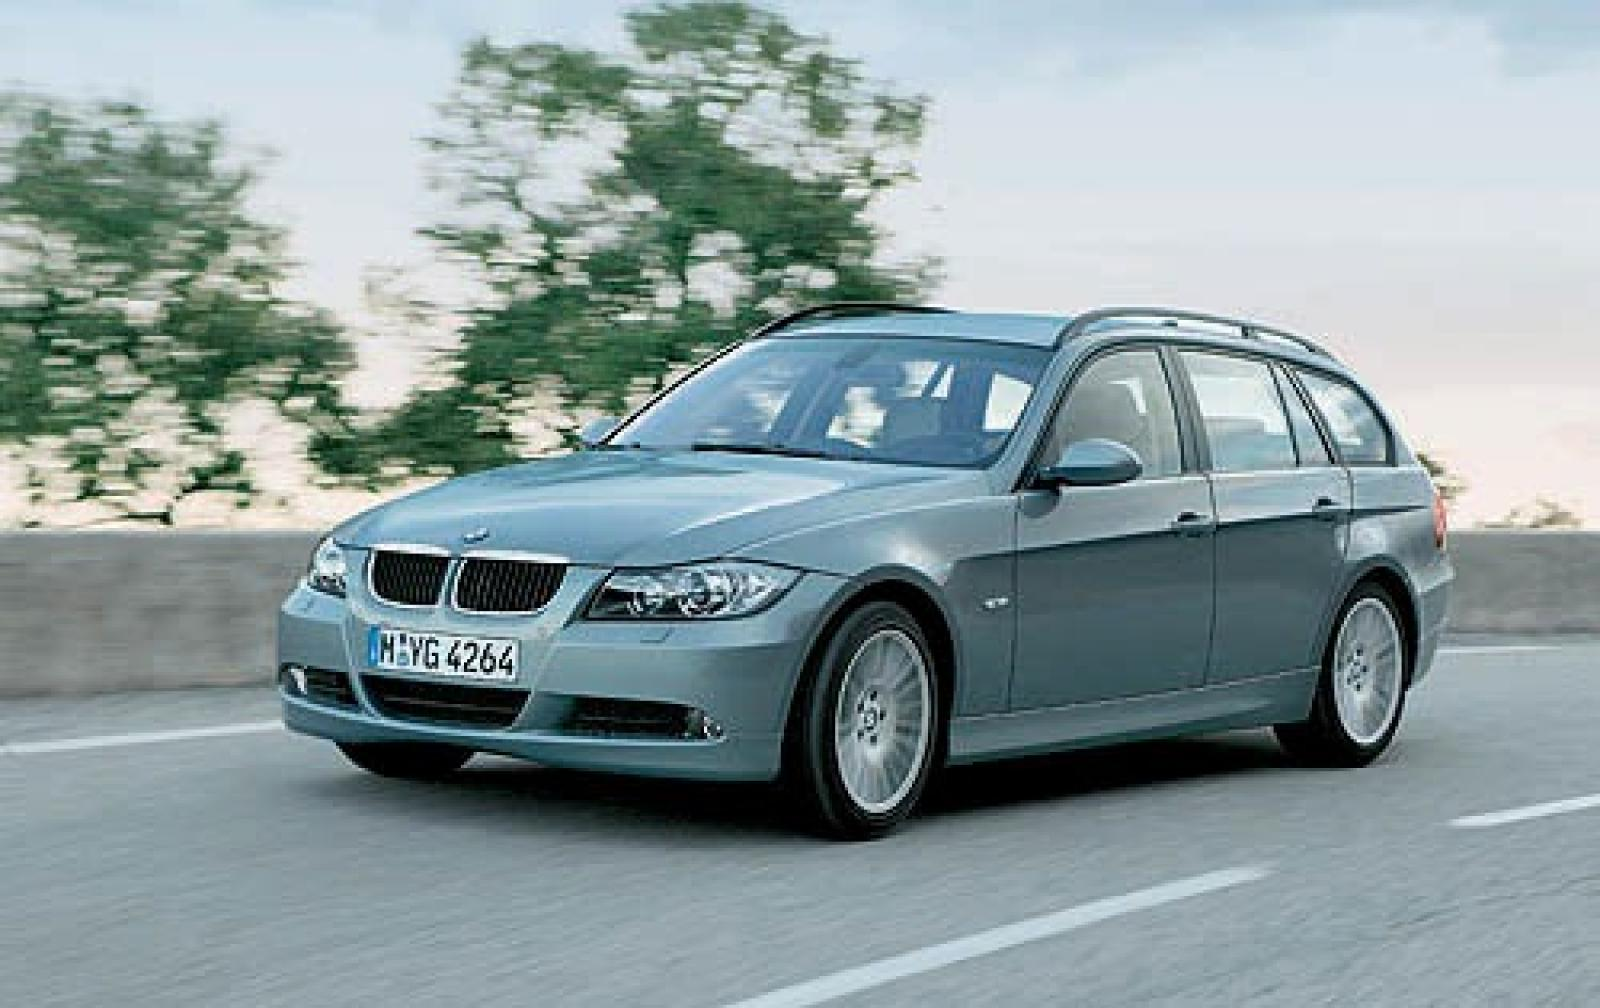 2006 Bmw 3 Series Information And Photos Zombiedrive